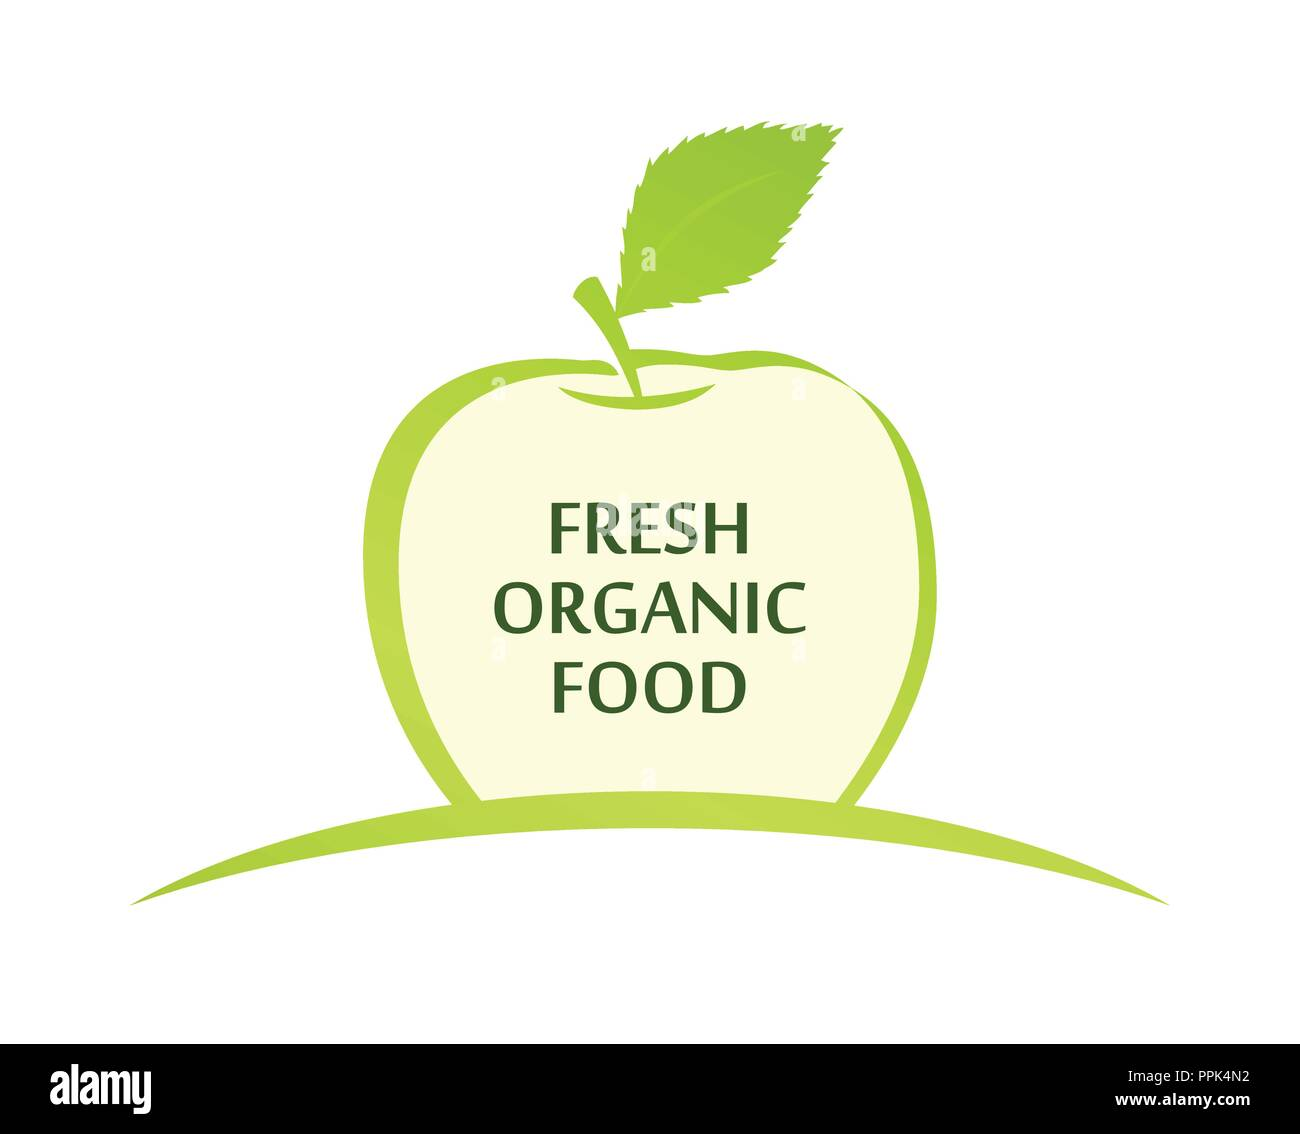 Vector Emblem of Fresh Organic Food with Green Apple Illustration isolated on white background - Stock Vector